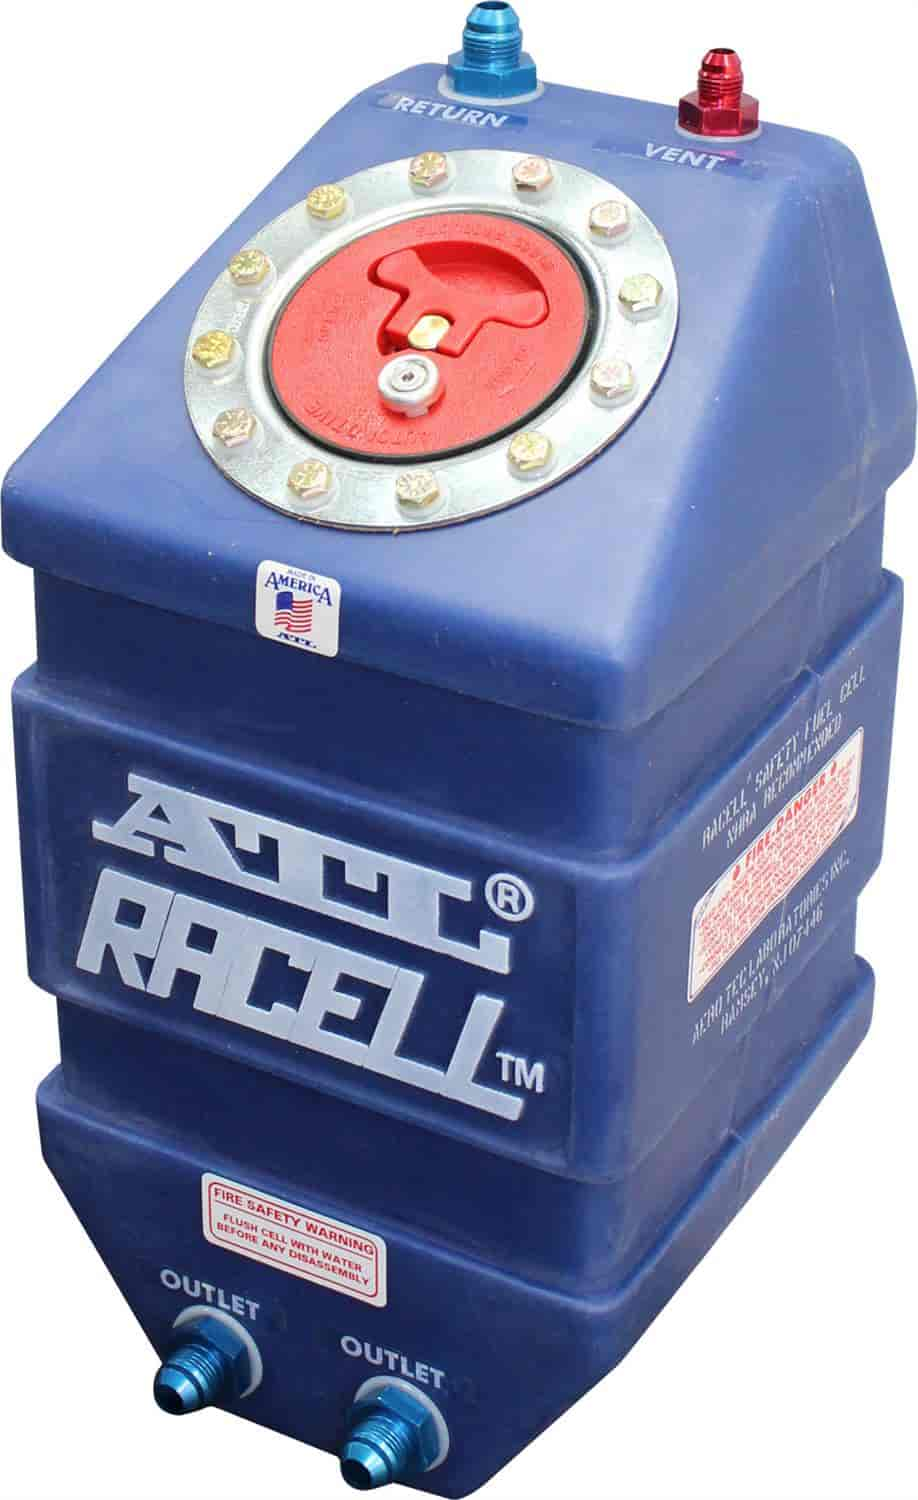 Atl Ra103 Racell 3 Gallon Fuel Cell 8an Dual Outlets And